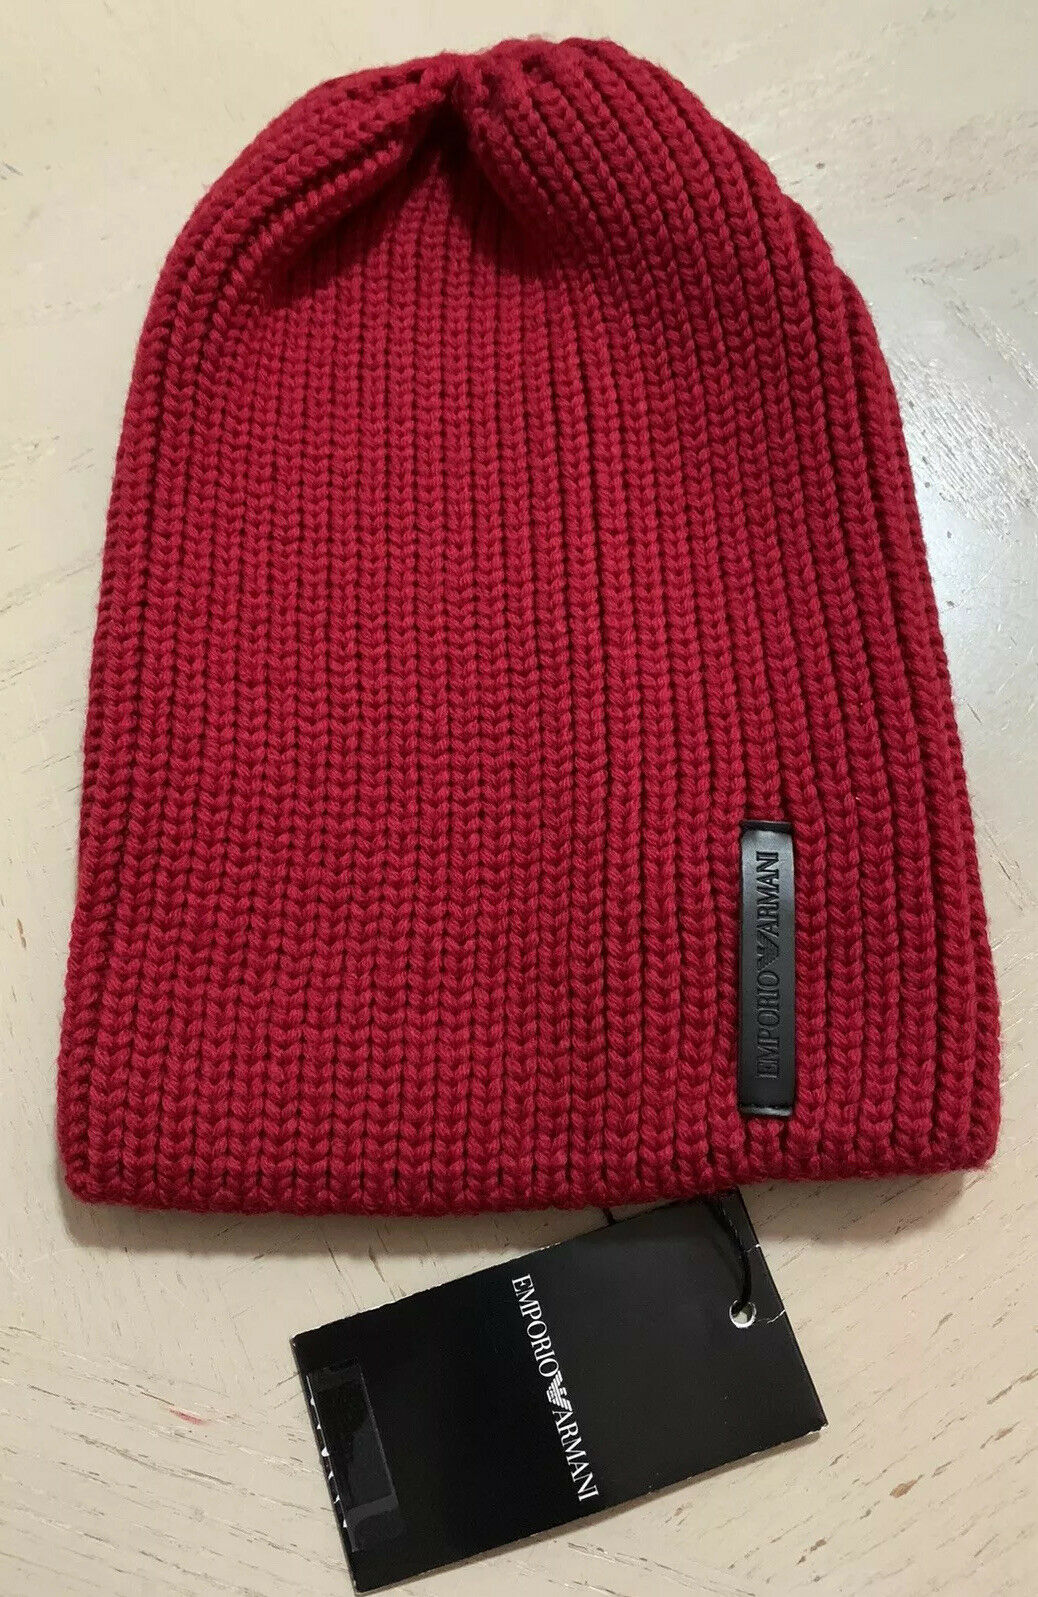 NWT $195 Emporio Armani Mens Beanie Hat Red Size M Italy